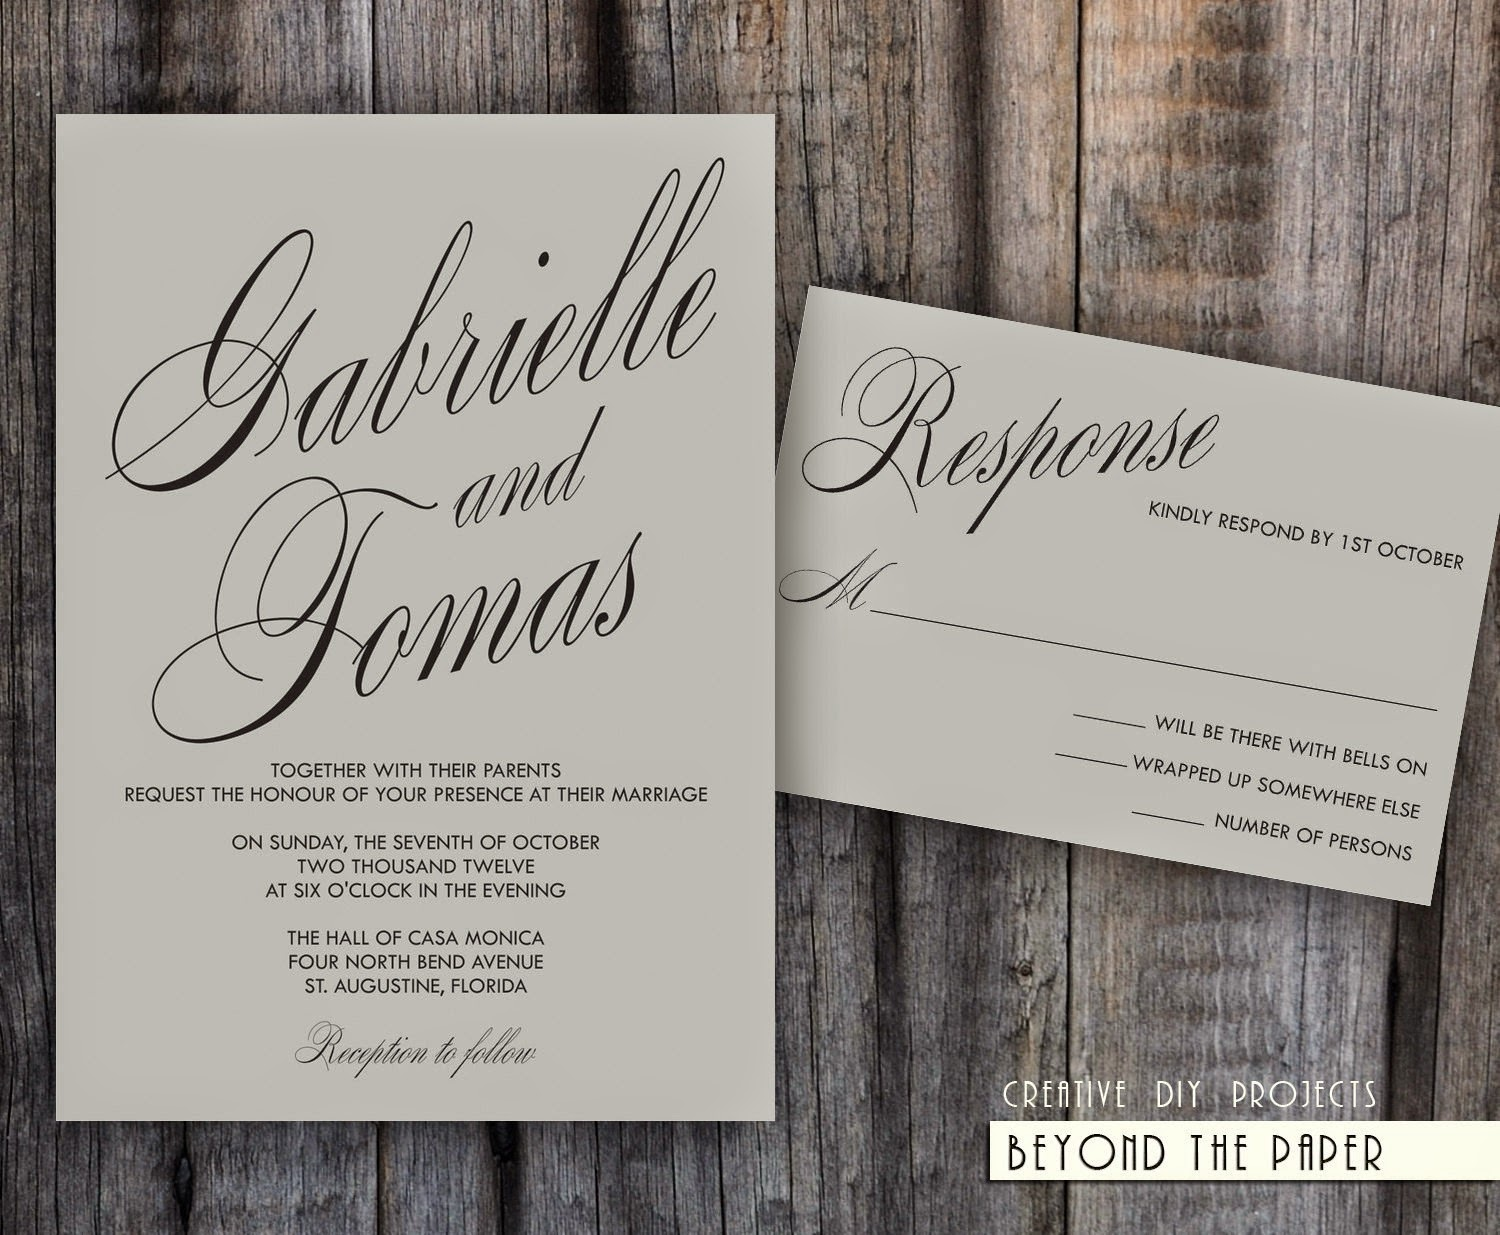 Template Invitation Wedding: Cheap Wedding Invitations: 50 Of The Best Wedding